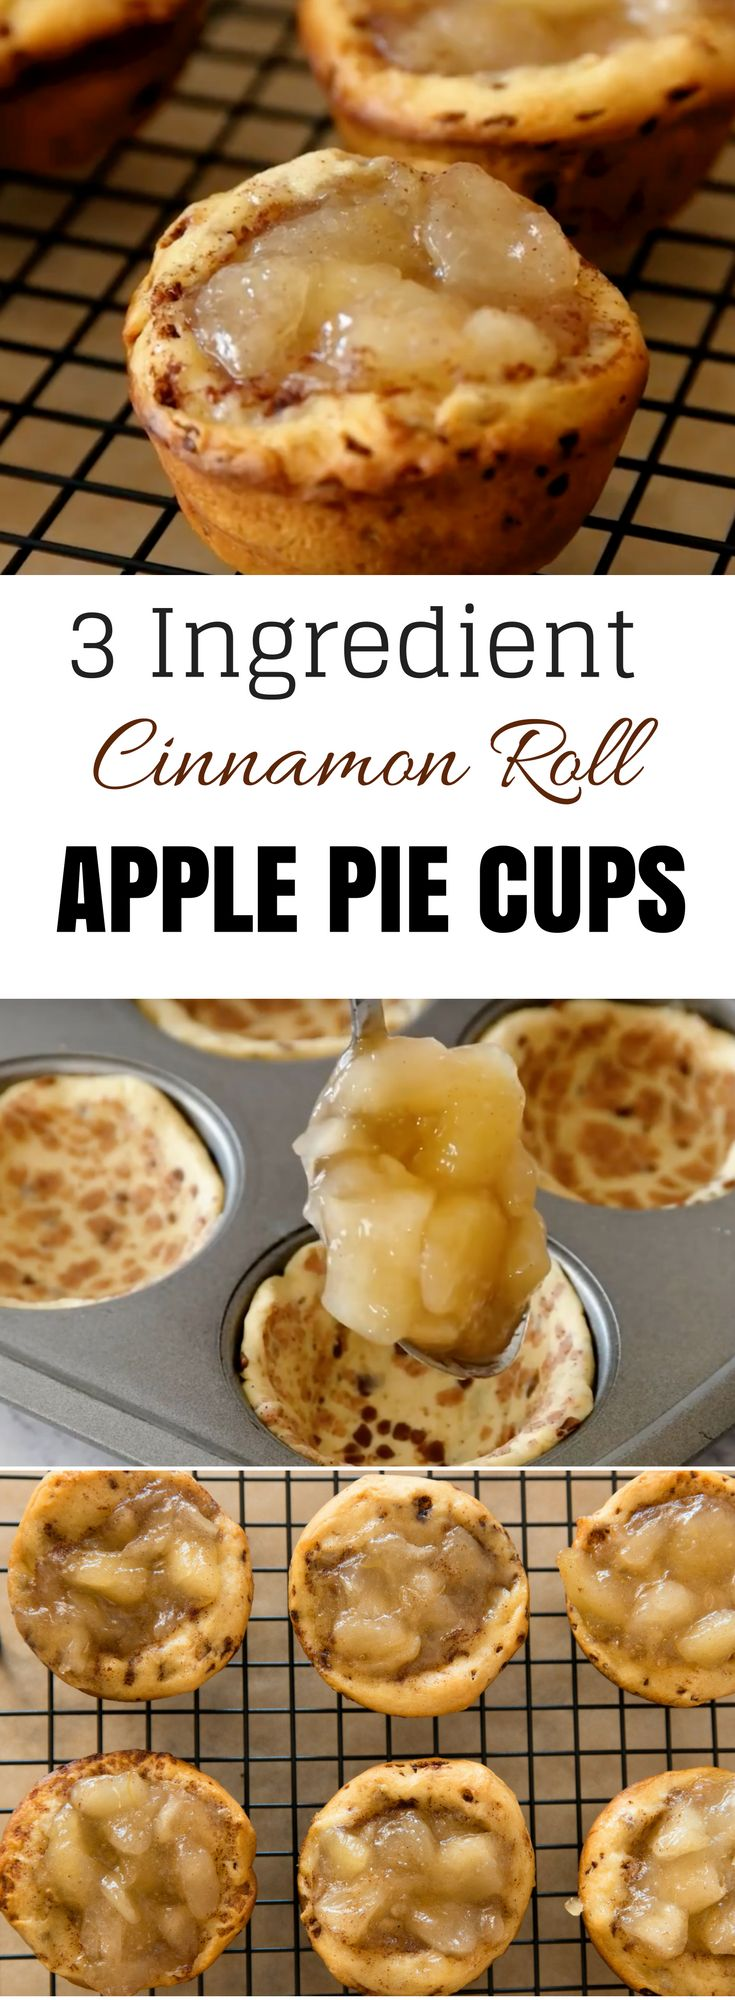 Cinnamon Roll Apple Pie Cups recipe only requires 3 ingredients with no filling preparation or pastry rolling required! Serve them with some ice cream or yogurt and watch everyone swoon. They are as g (Favorite Recipes 3 Ingredients)